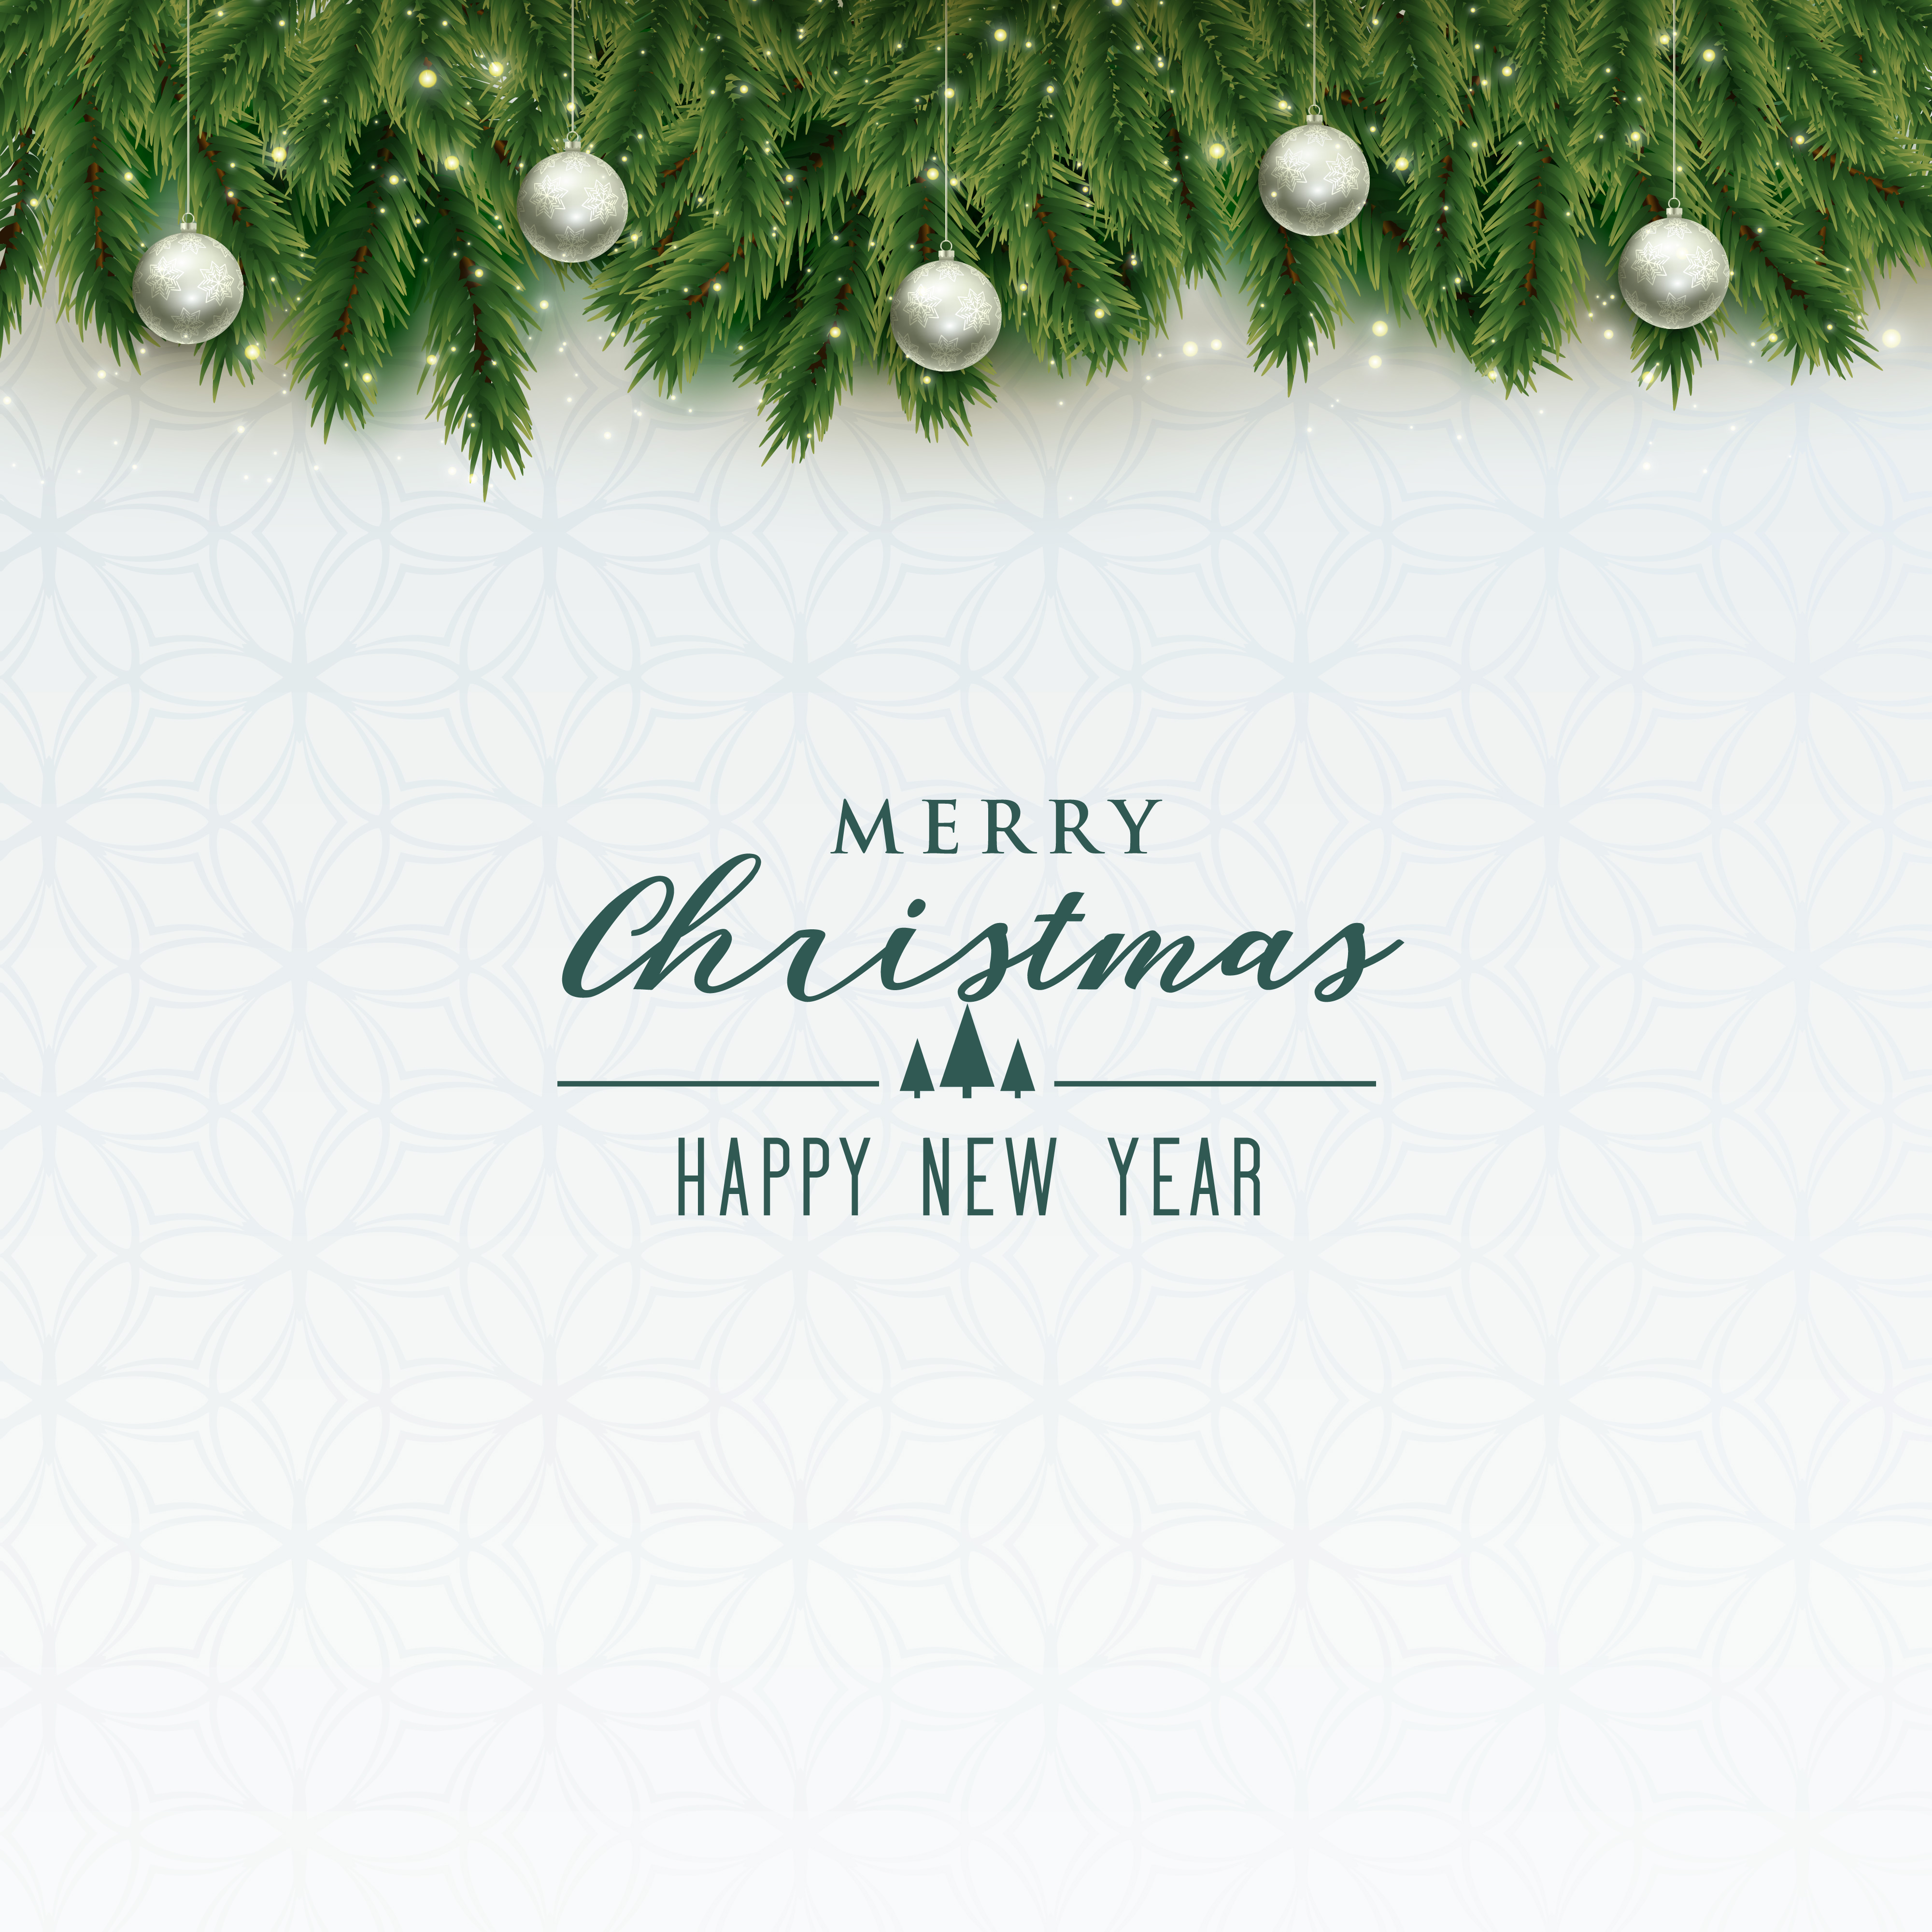 elegant merry christmas background with silver balls - Download Free ...